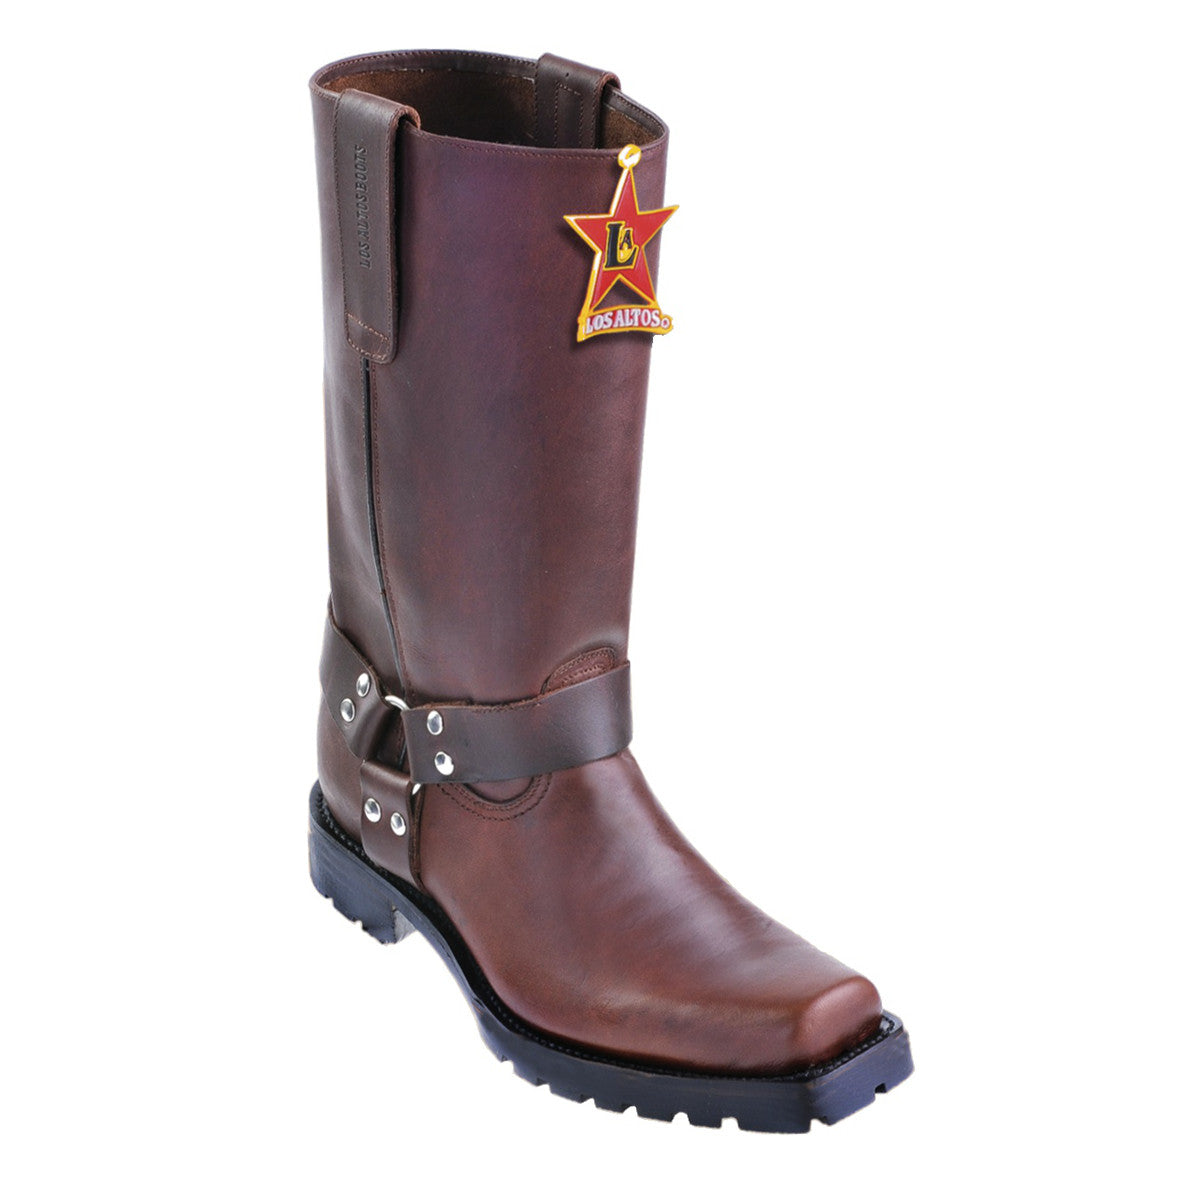 Los Altos Boots Motorcycle Boots Square Toe